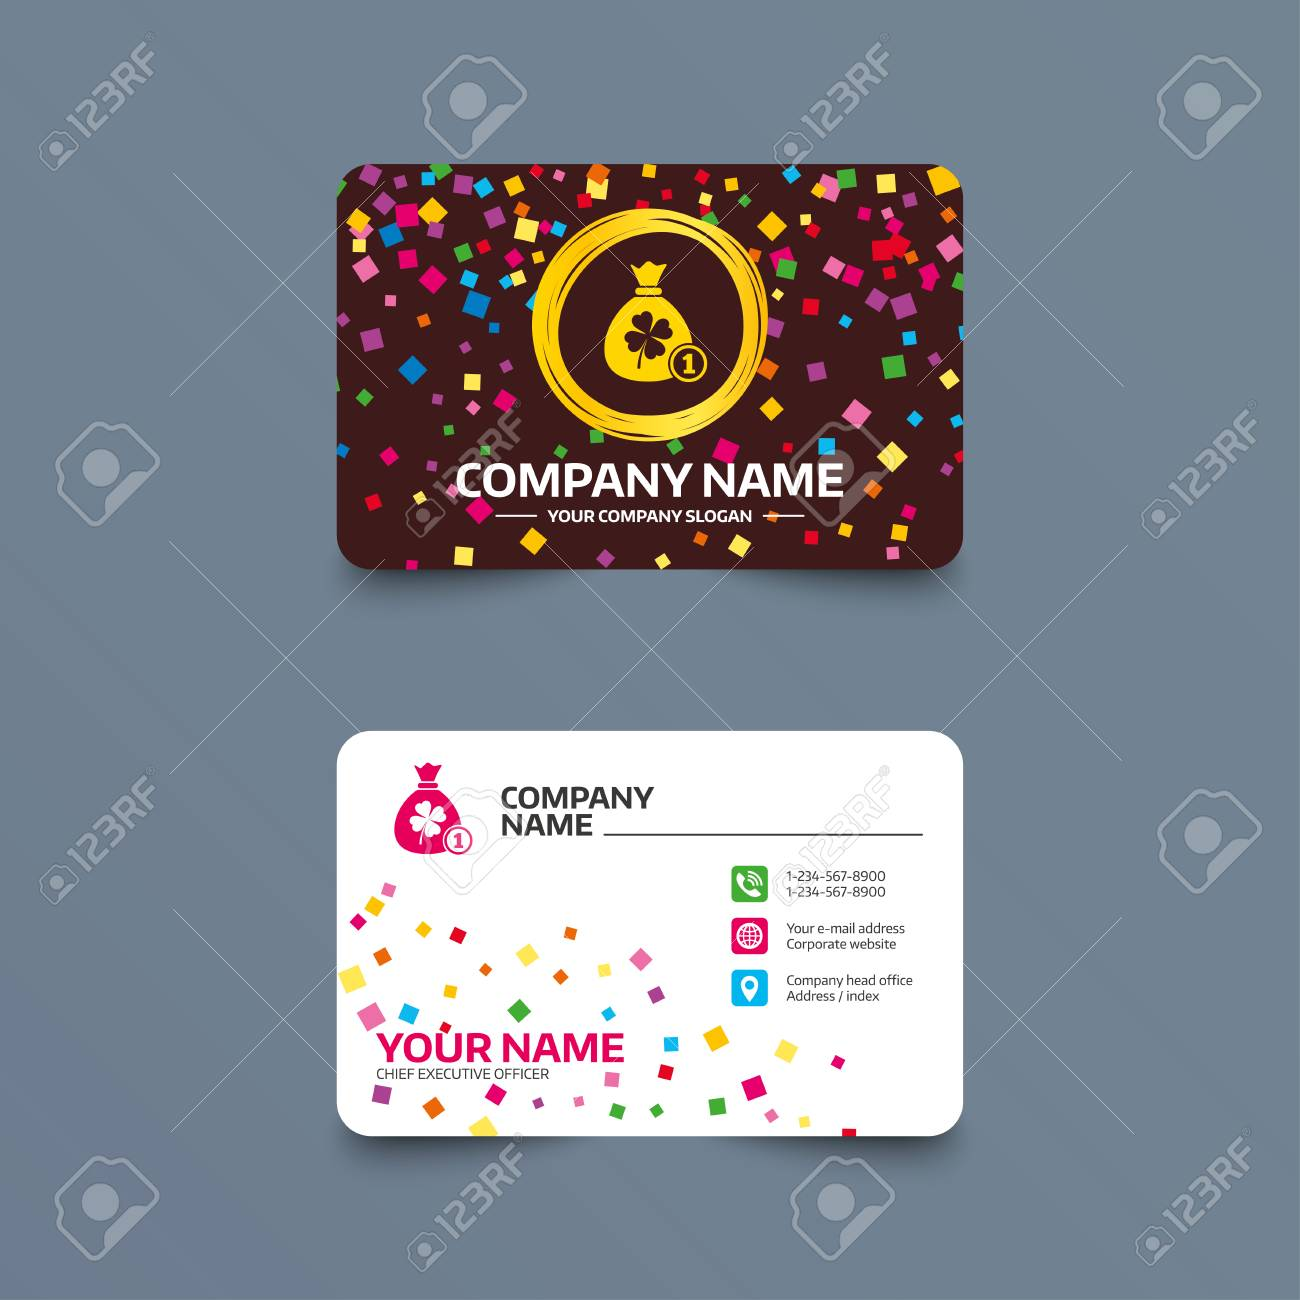 Business Card Template With Confetti Pieces. Money Bag With Clover ...